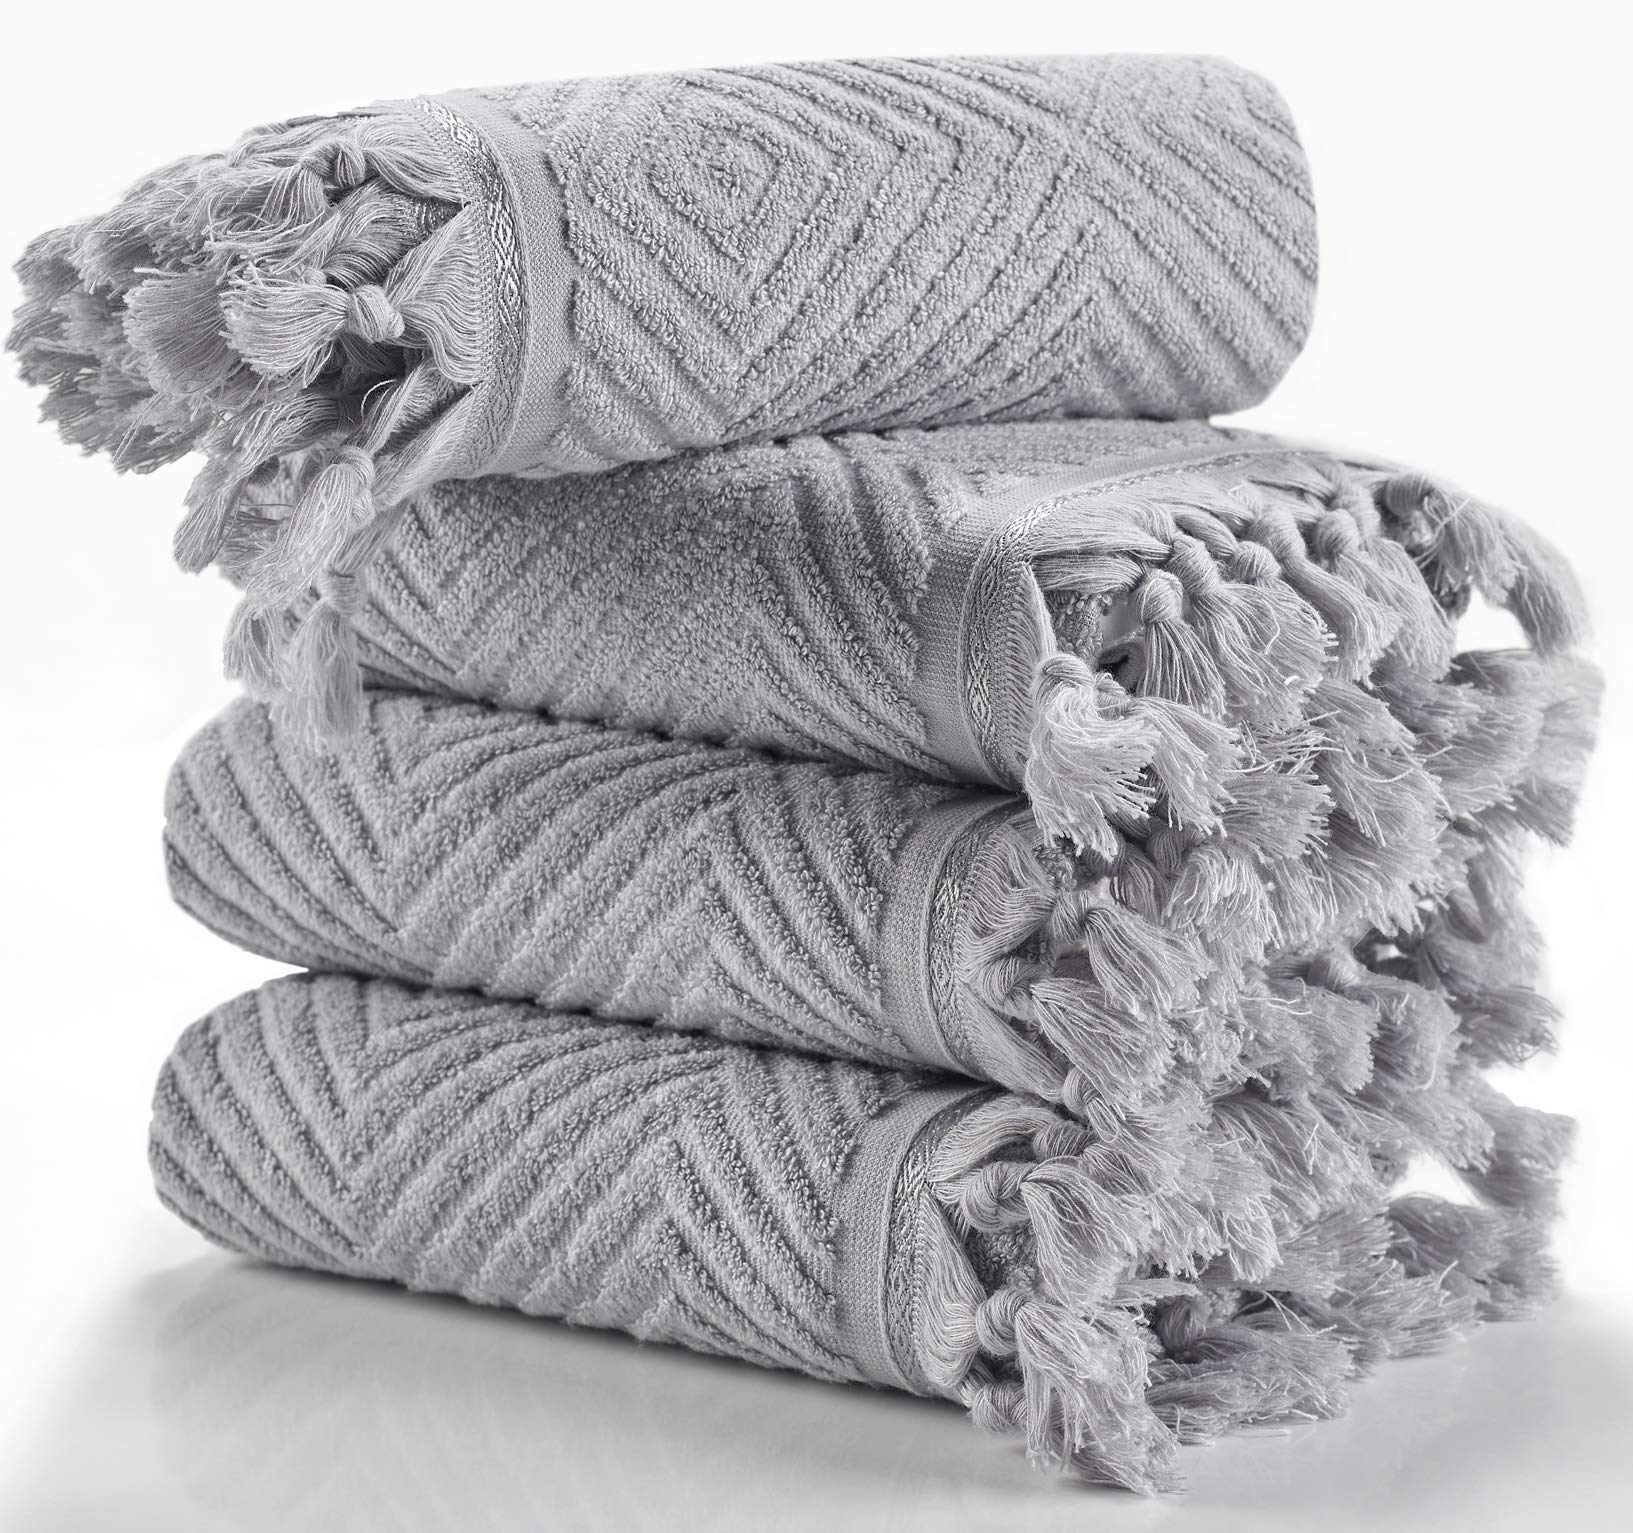 Arvec Turkish Bamboo Towel%70 Bamboo%30 Turkish Cotton, 500 GSM, Authentic Design 4 Piece Hand Towel Set 19 x 35 Ultra Absorbent and Ultra Soft (Grey)